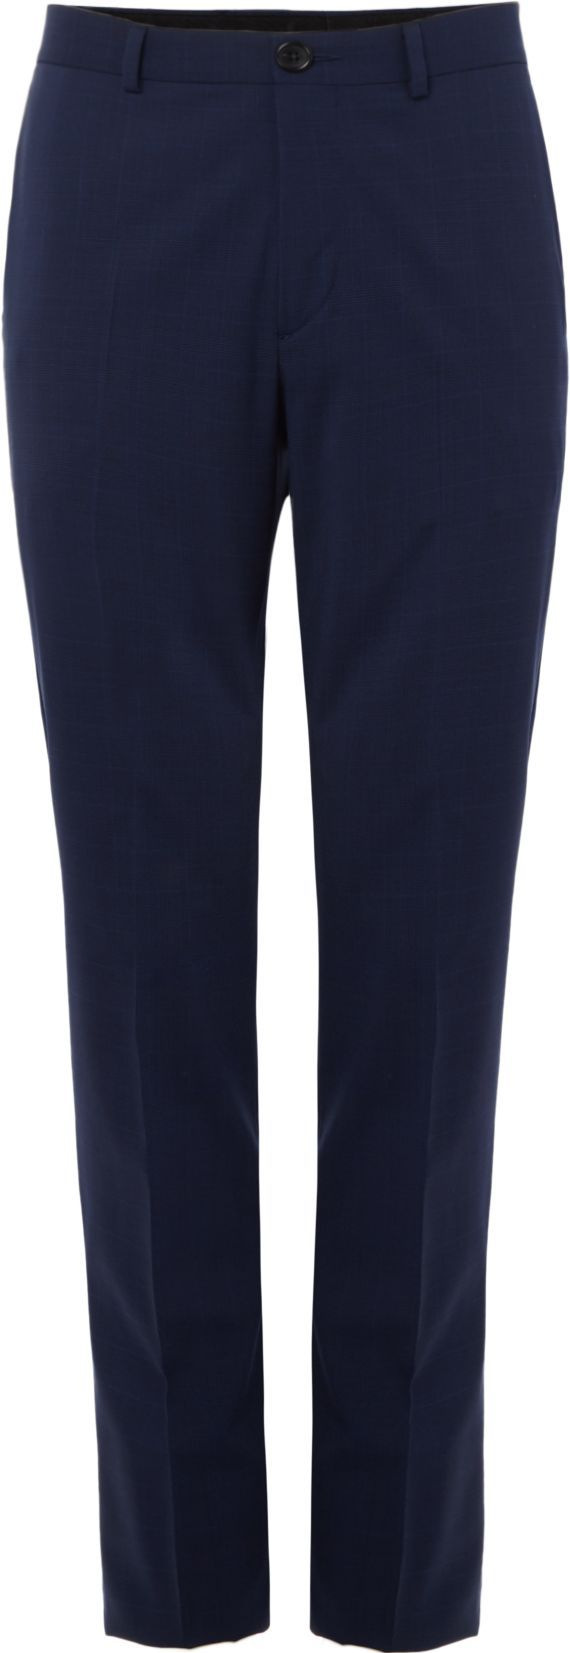 Buy: Men's PS By Paul Smith Mohair Wool Suit Trousers, Blue for just: £155.00 House of Fraser Currently Offers: Men's PS By Paul Smith Mohair Wool Suit Trousers, Blue from Store Category: Men > Suits & Tailoring > Suit Trousers for just: GBP155.00